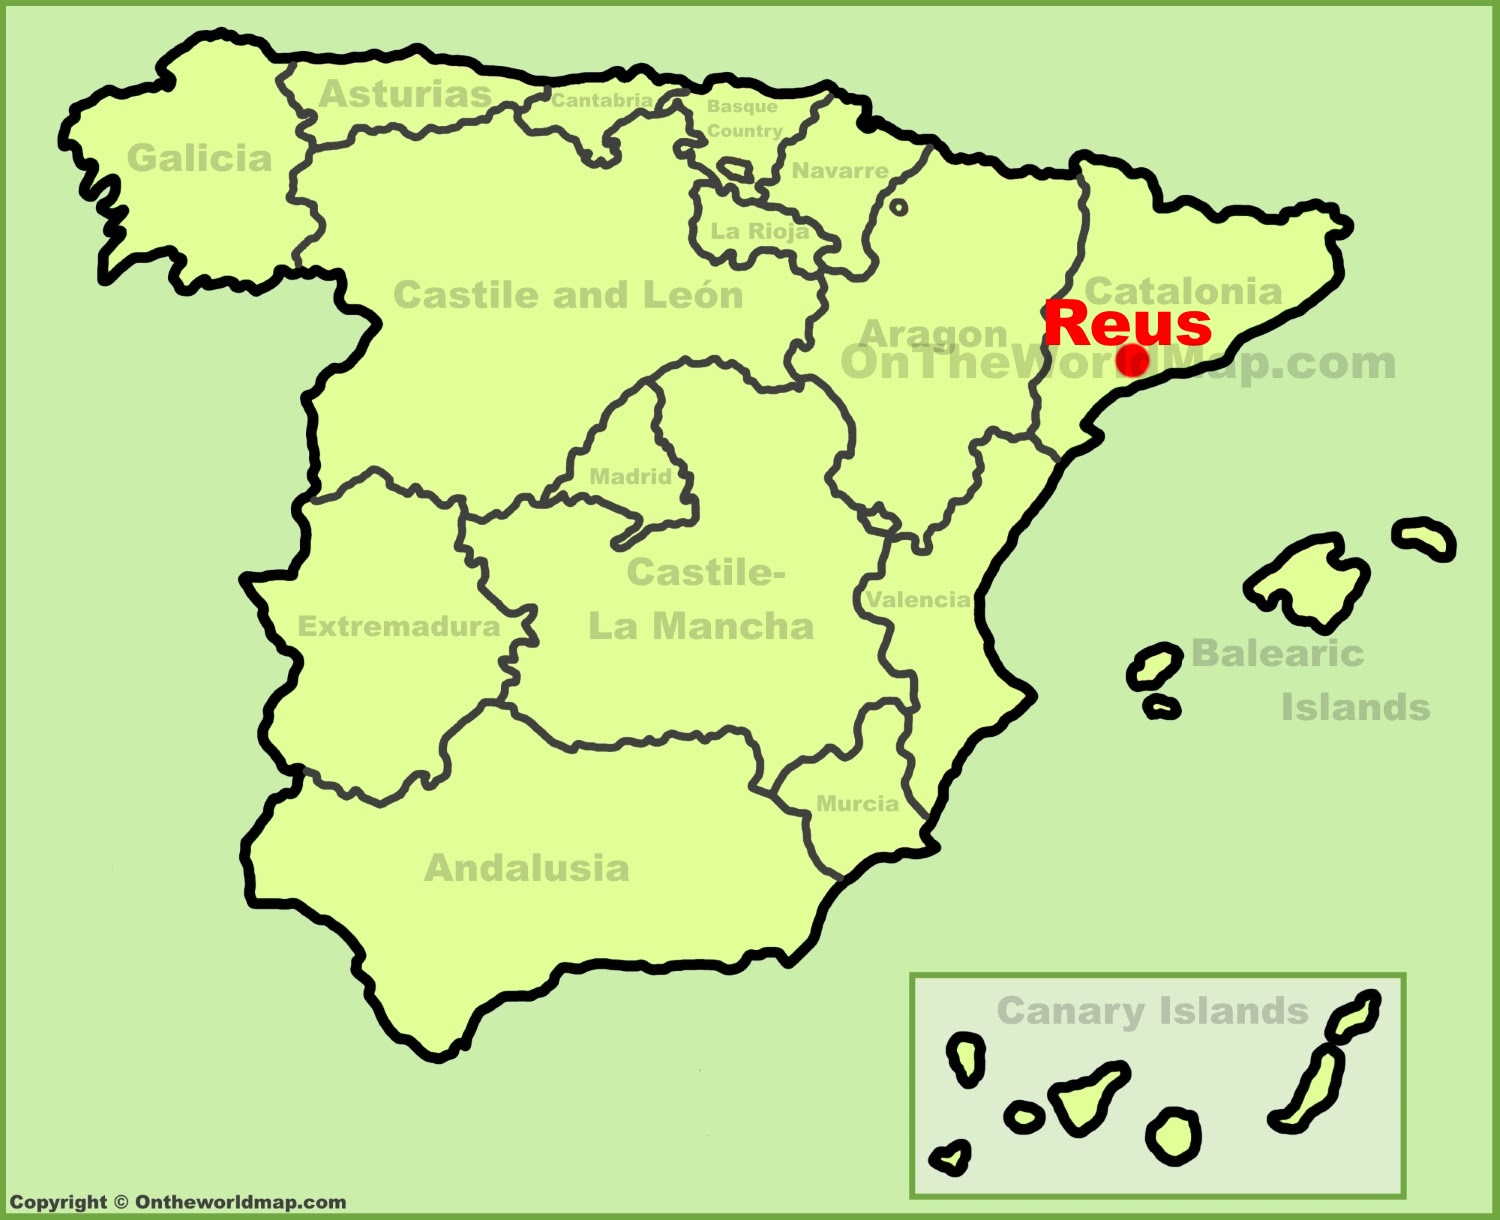 reus location on the spain map